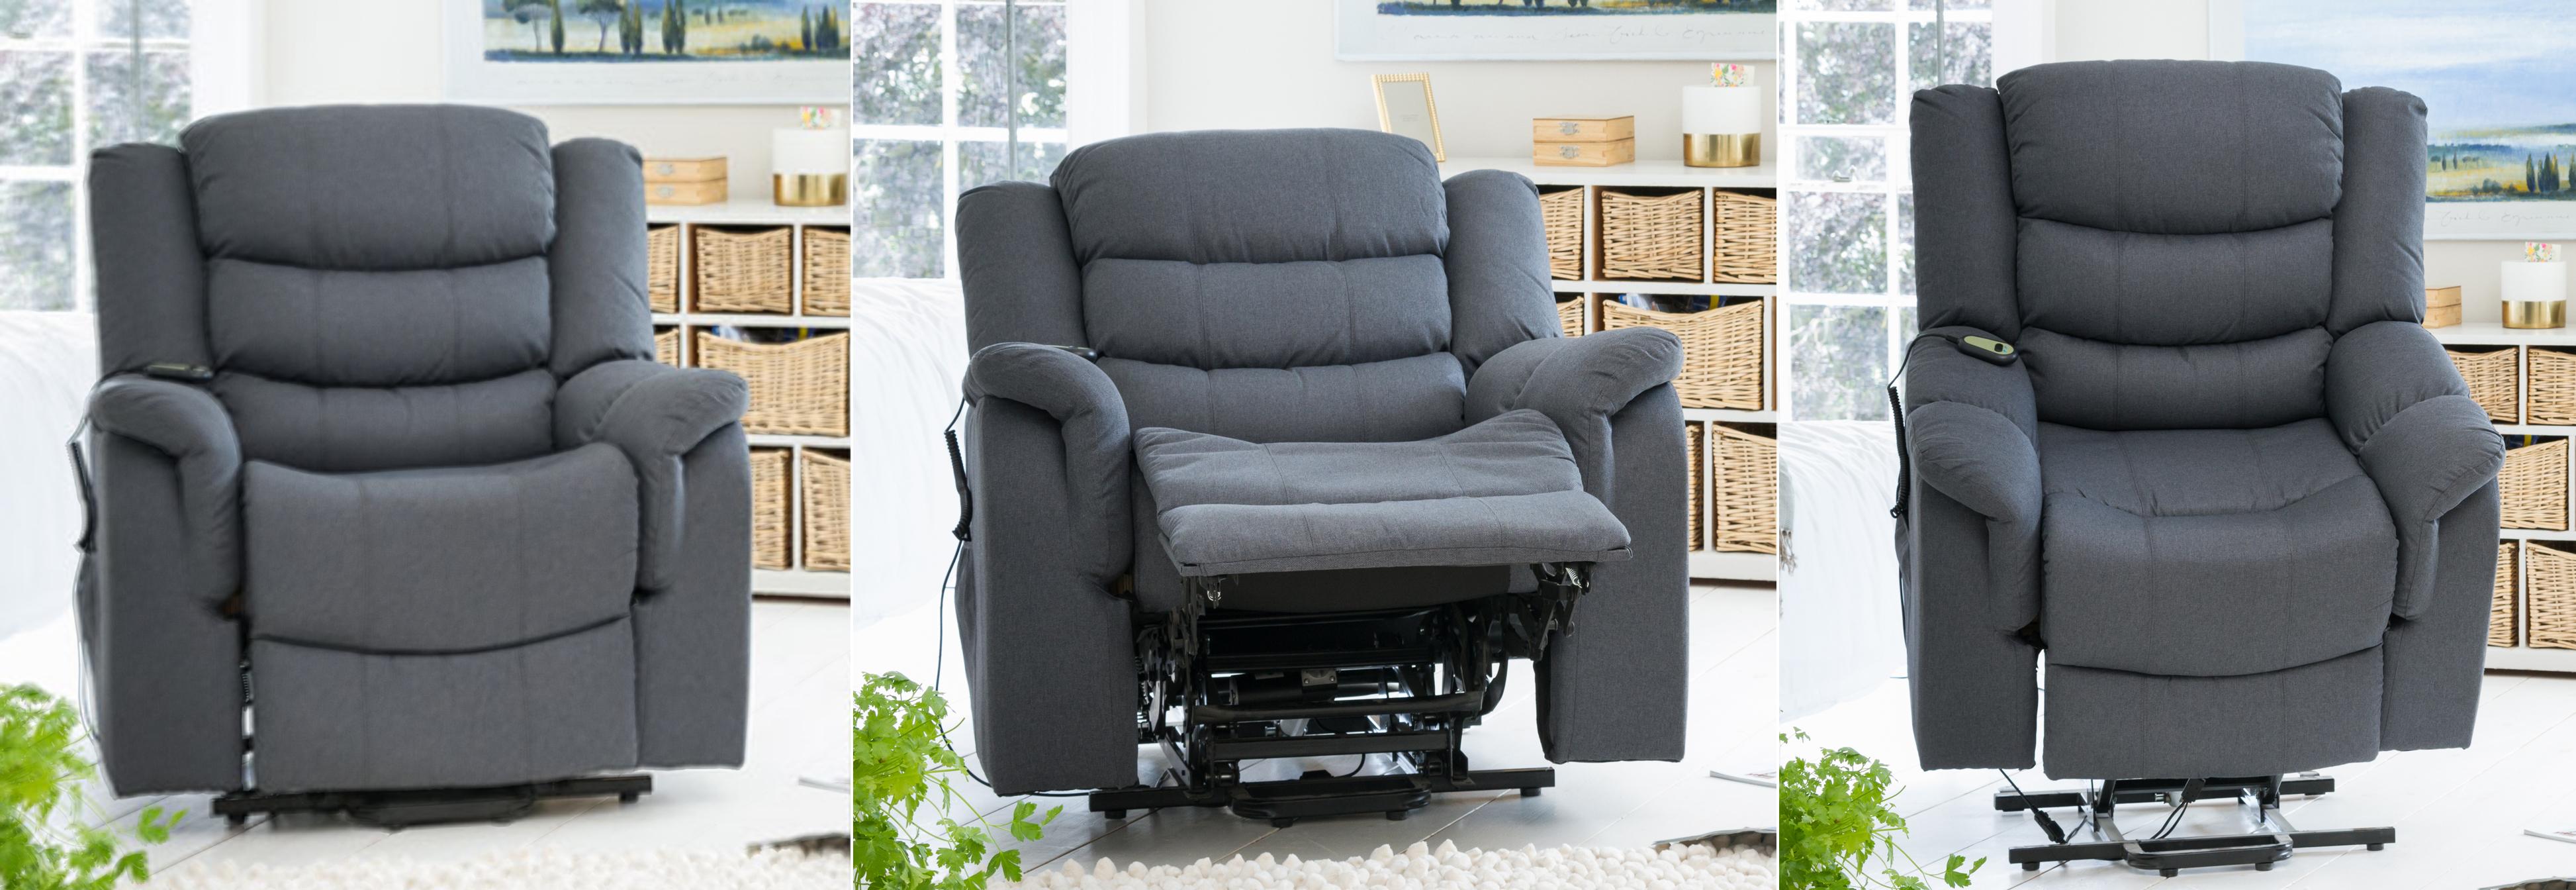 Portman Riser Recliner with Massage and Heat dark grey